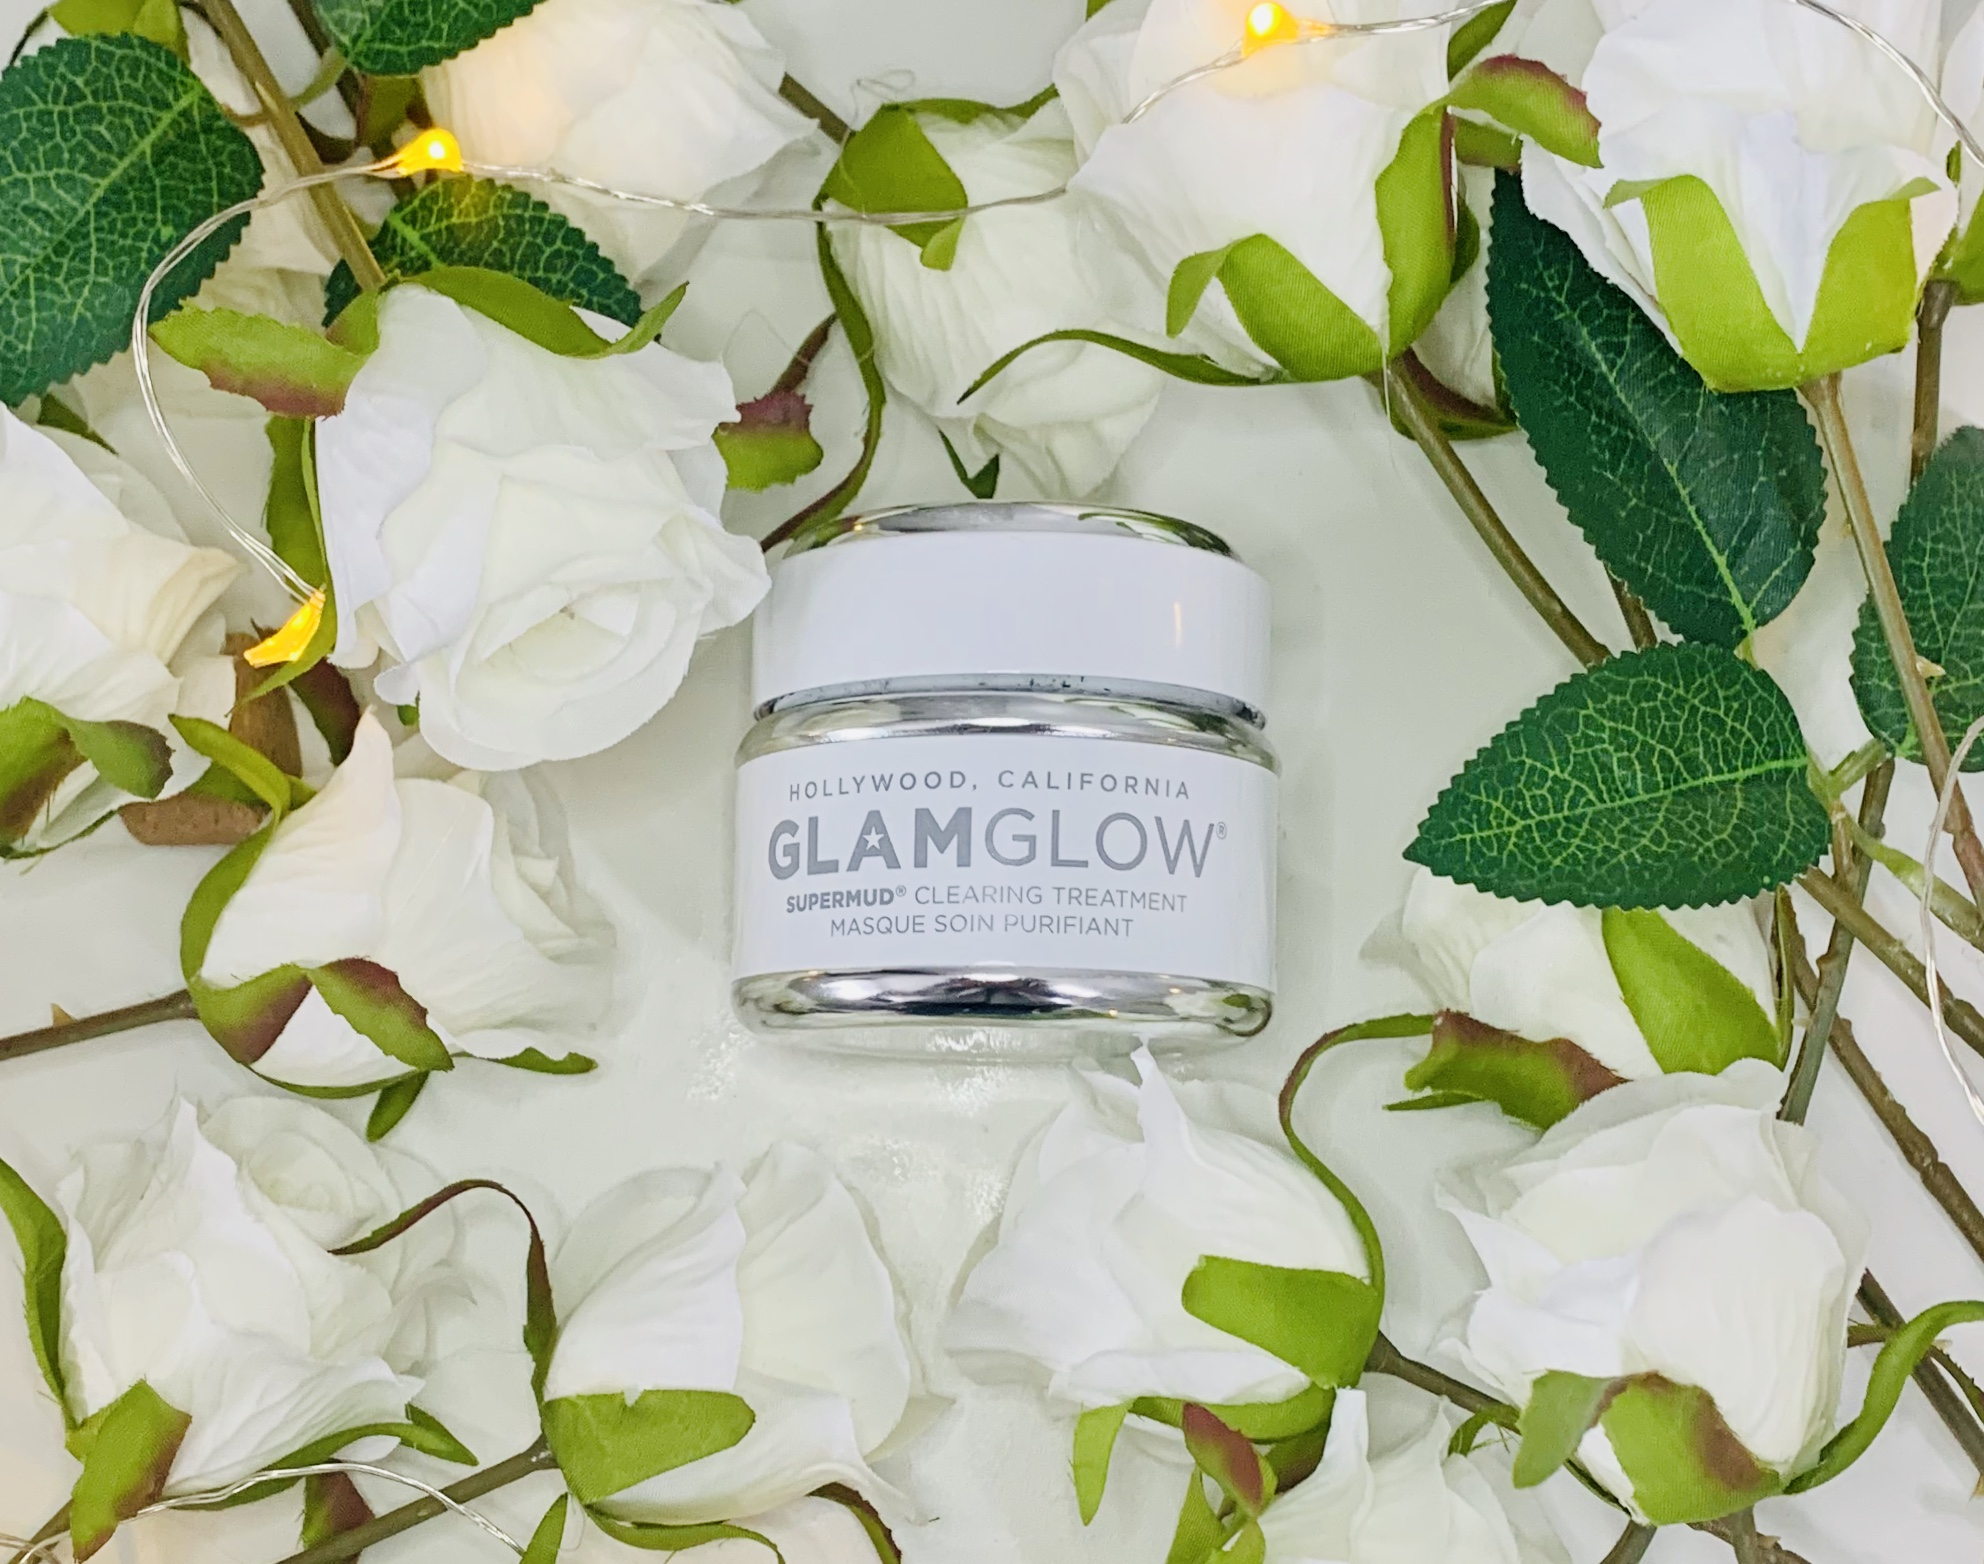 GlamGlow SuperMud Clearning Treatment Mask. Face masks for oily skin